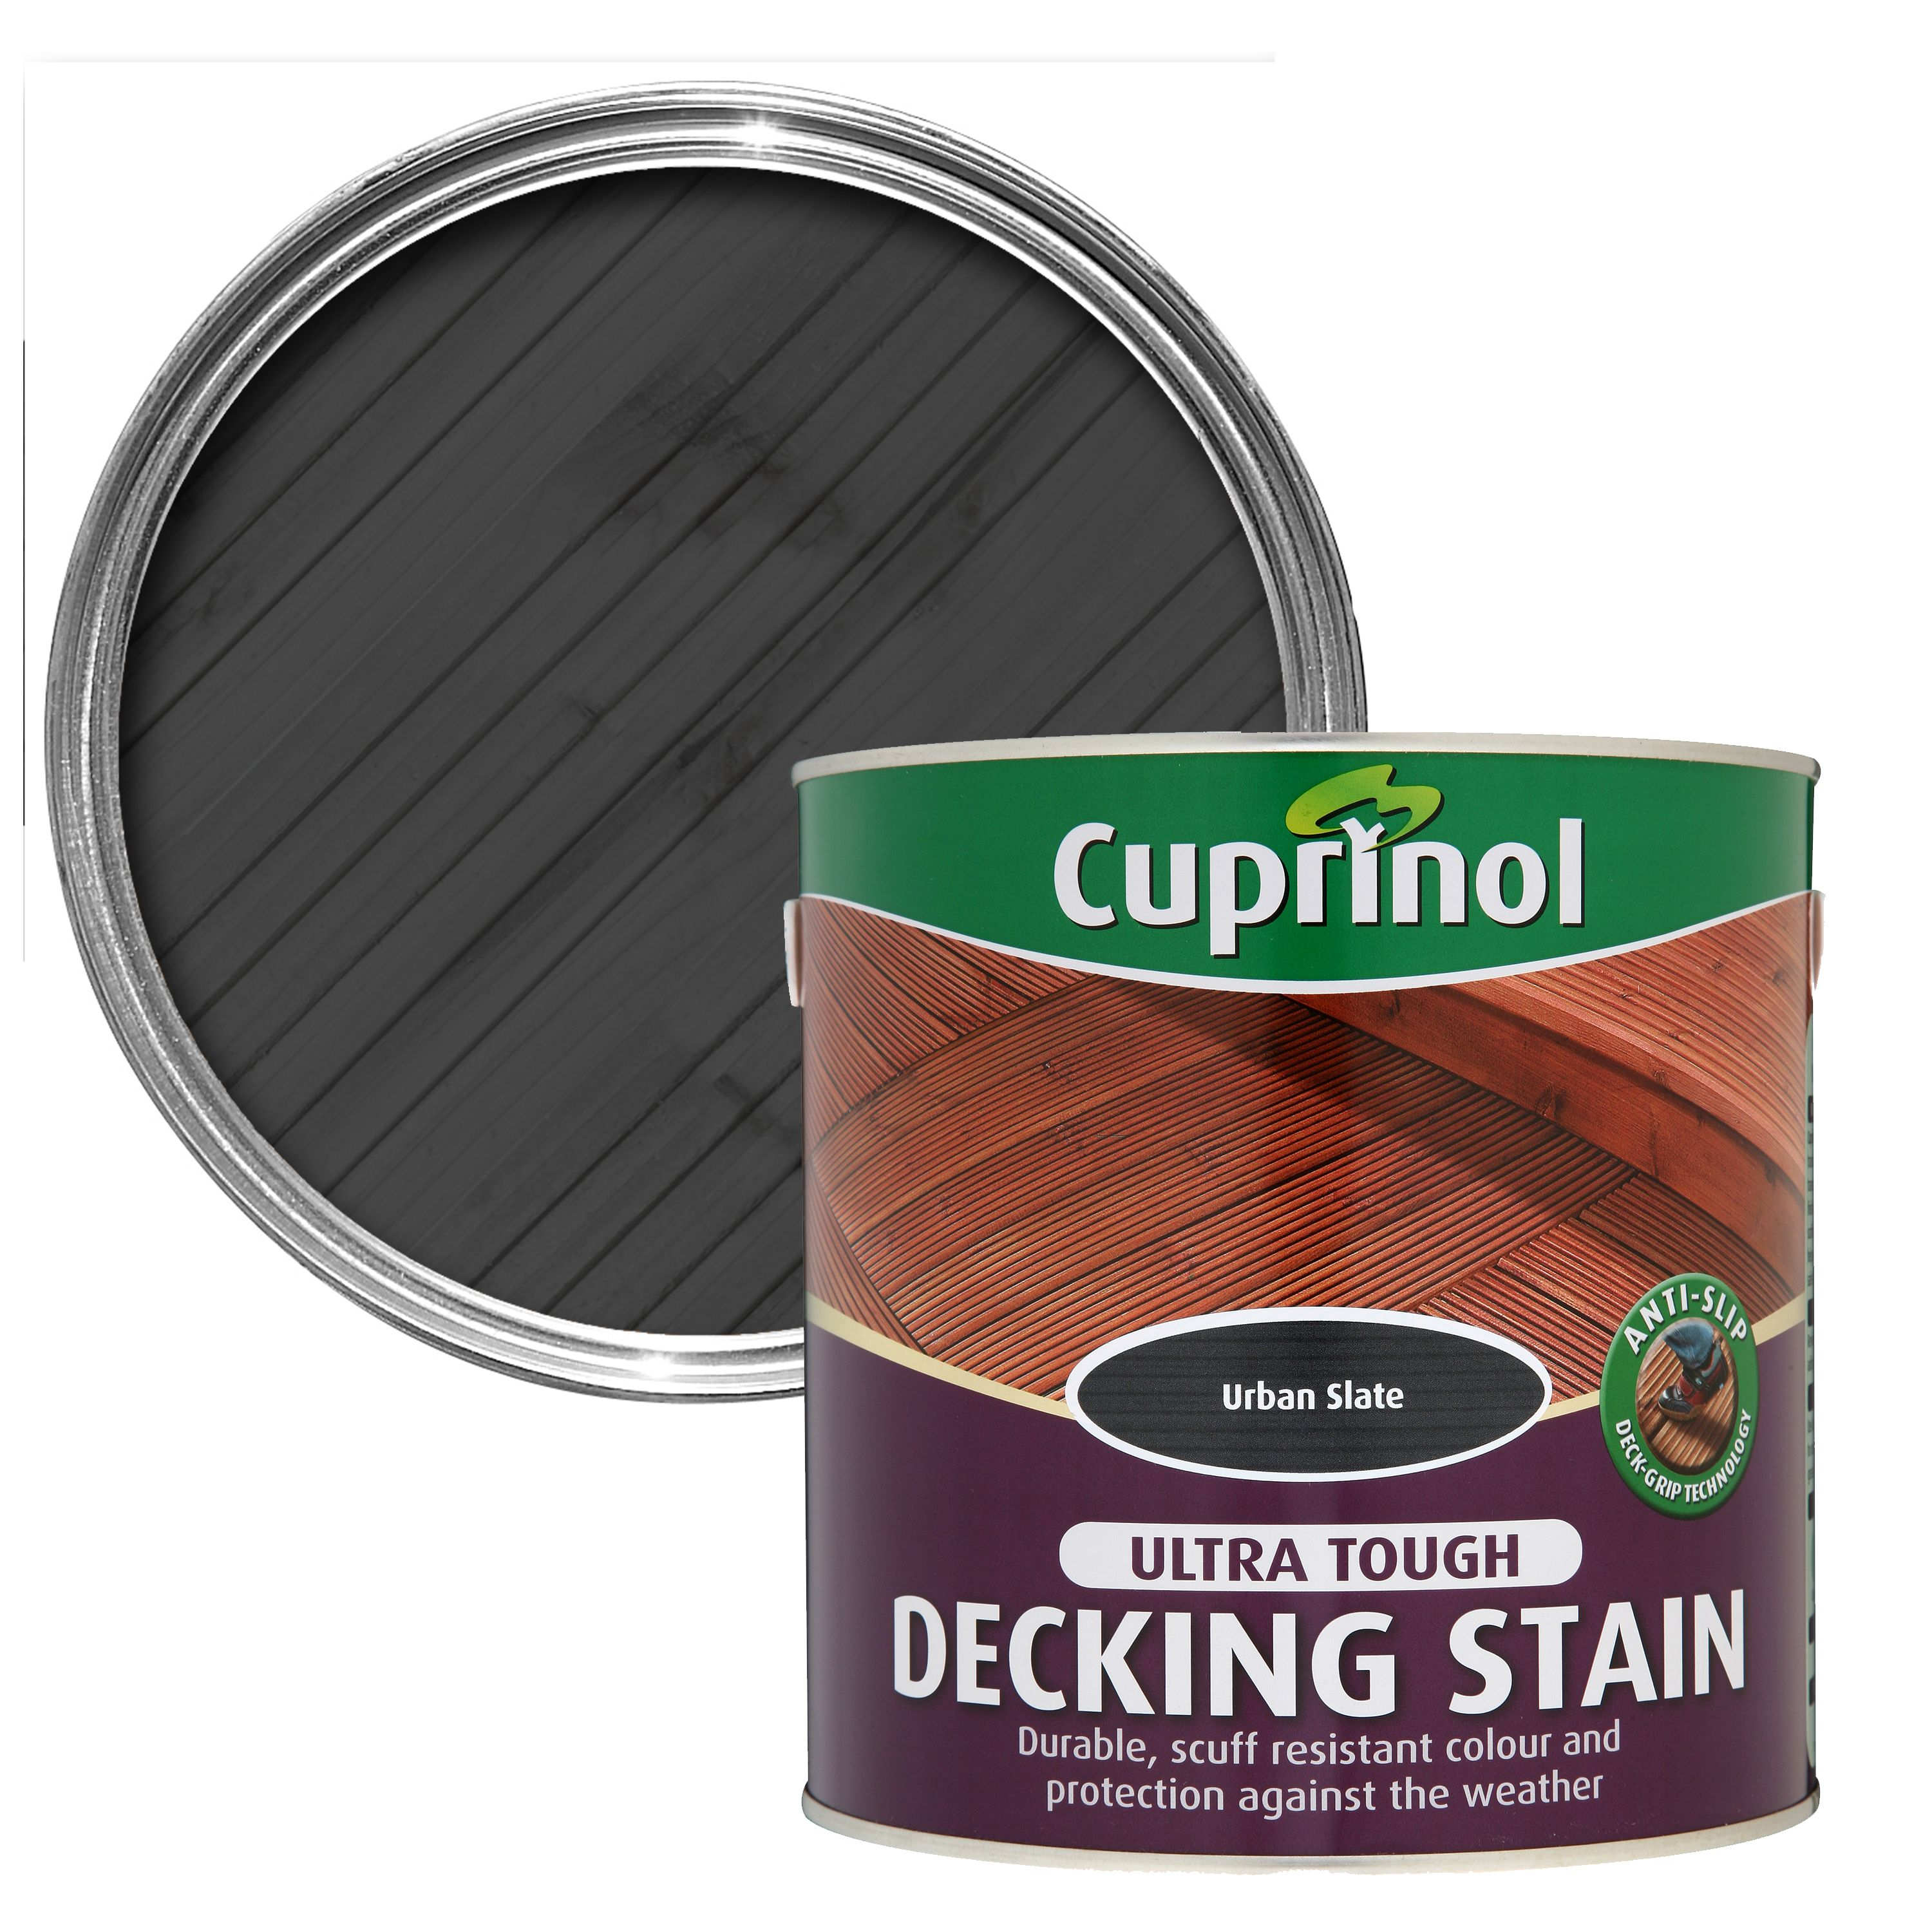 Cuprinol garden shades black ash wood paint 5l for B and q timber decking